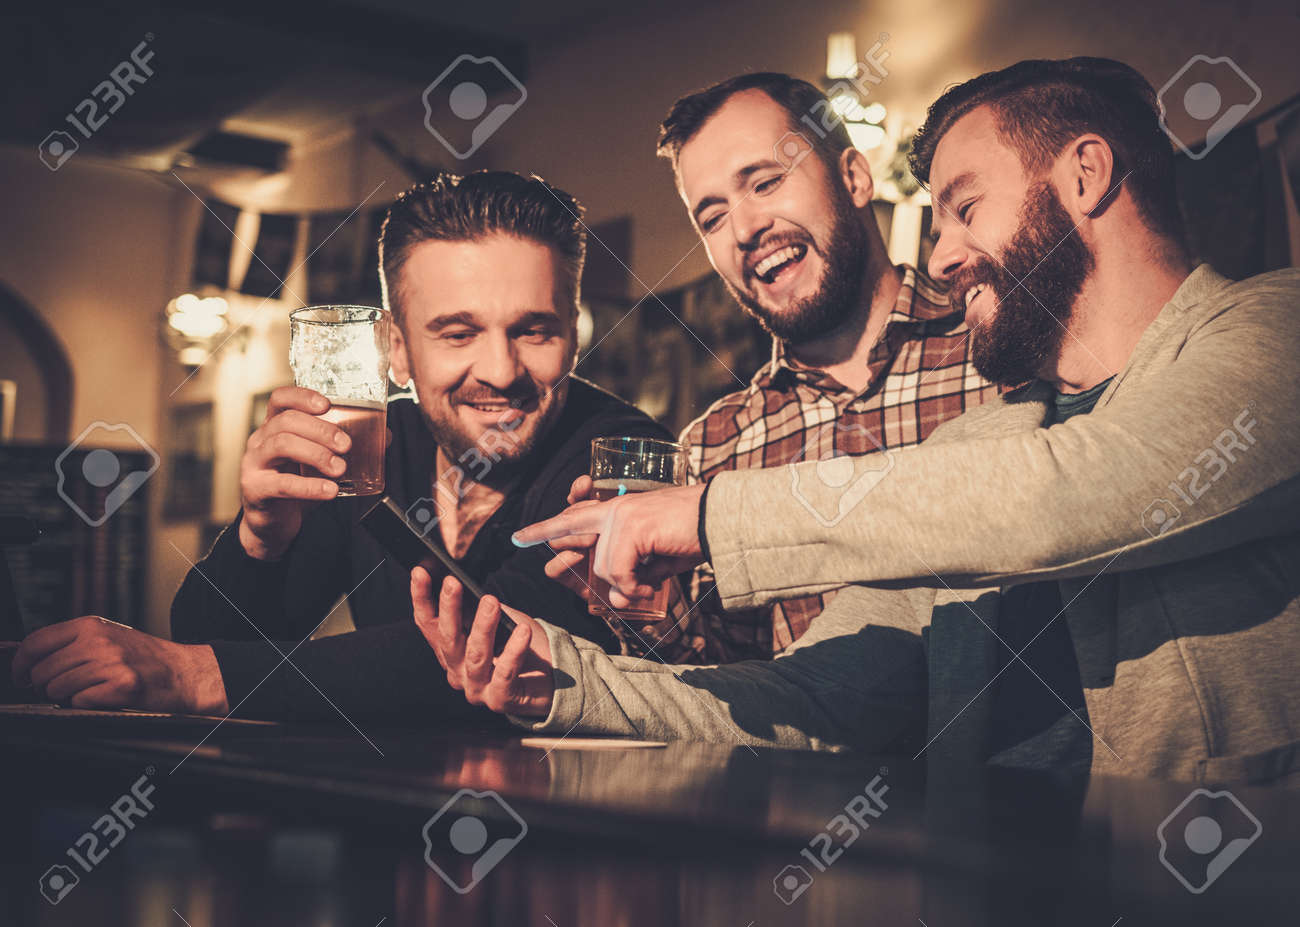 Cheerful old friends having fun with smartphone and drinking draft beer at bar counter in pub. Stock Photo - 53766592